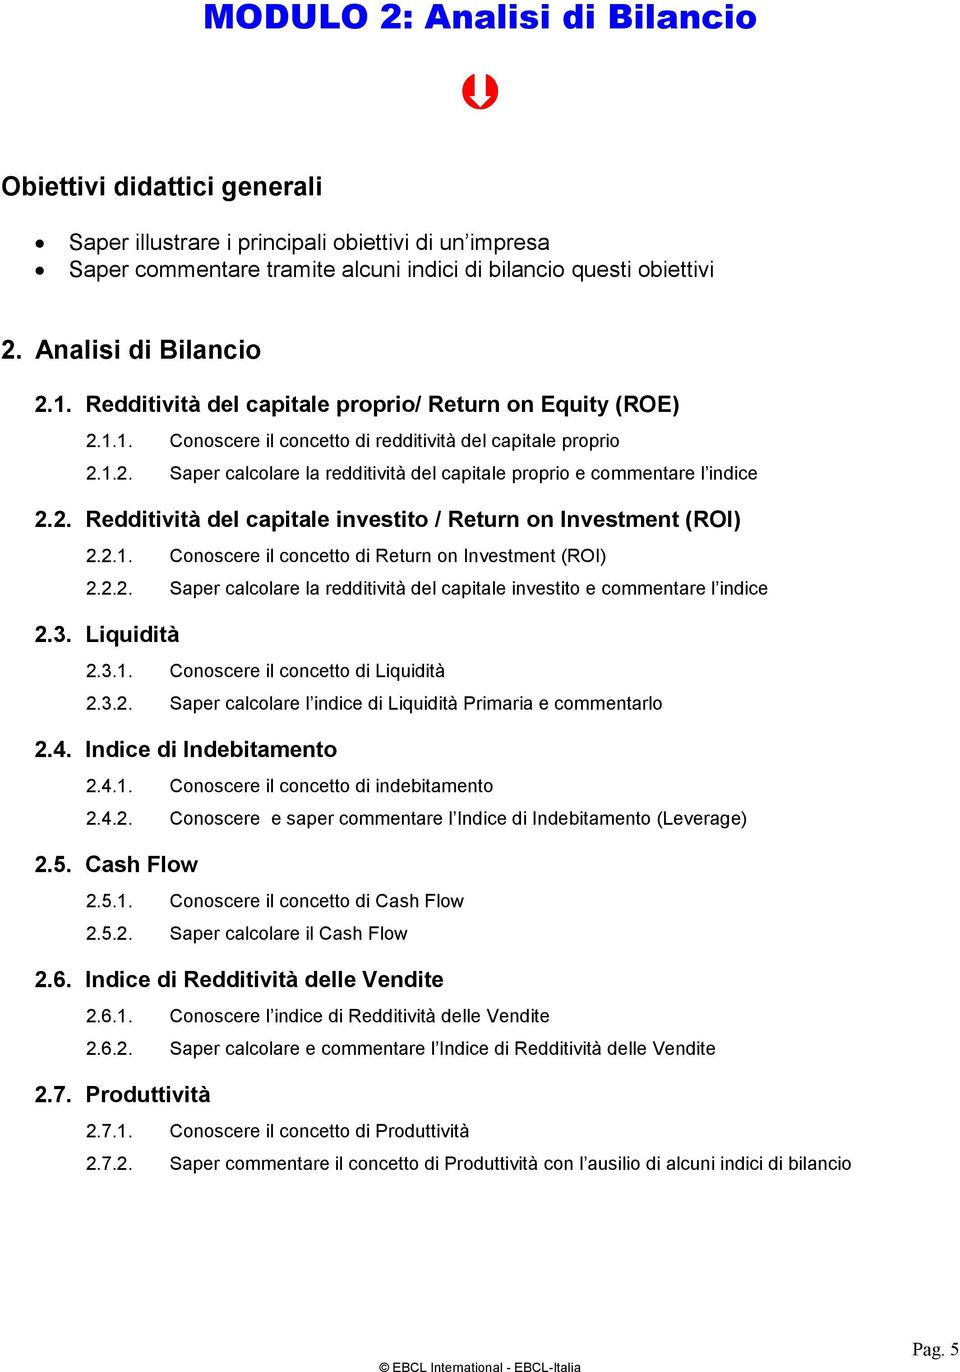 2. Redditività del capitale investito / Return on Investment (ROI) 2.2.1. Conoscere il concetto di Return on Investment (ROI) 2.2.2. Saper calcolare la redditività del capitale investito e commentare l indice 2.